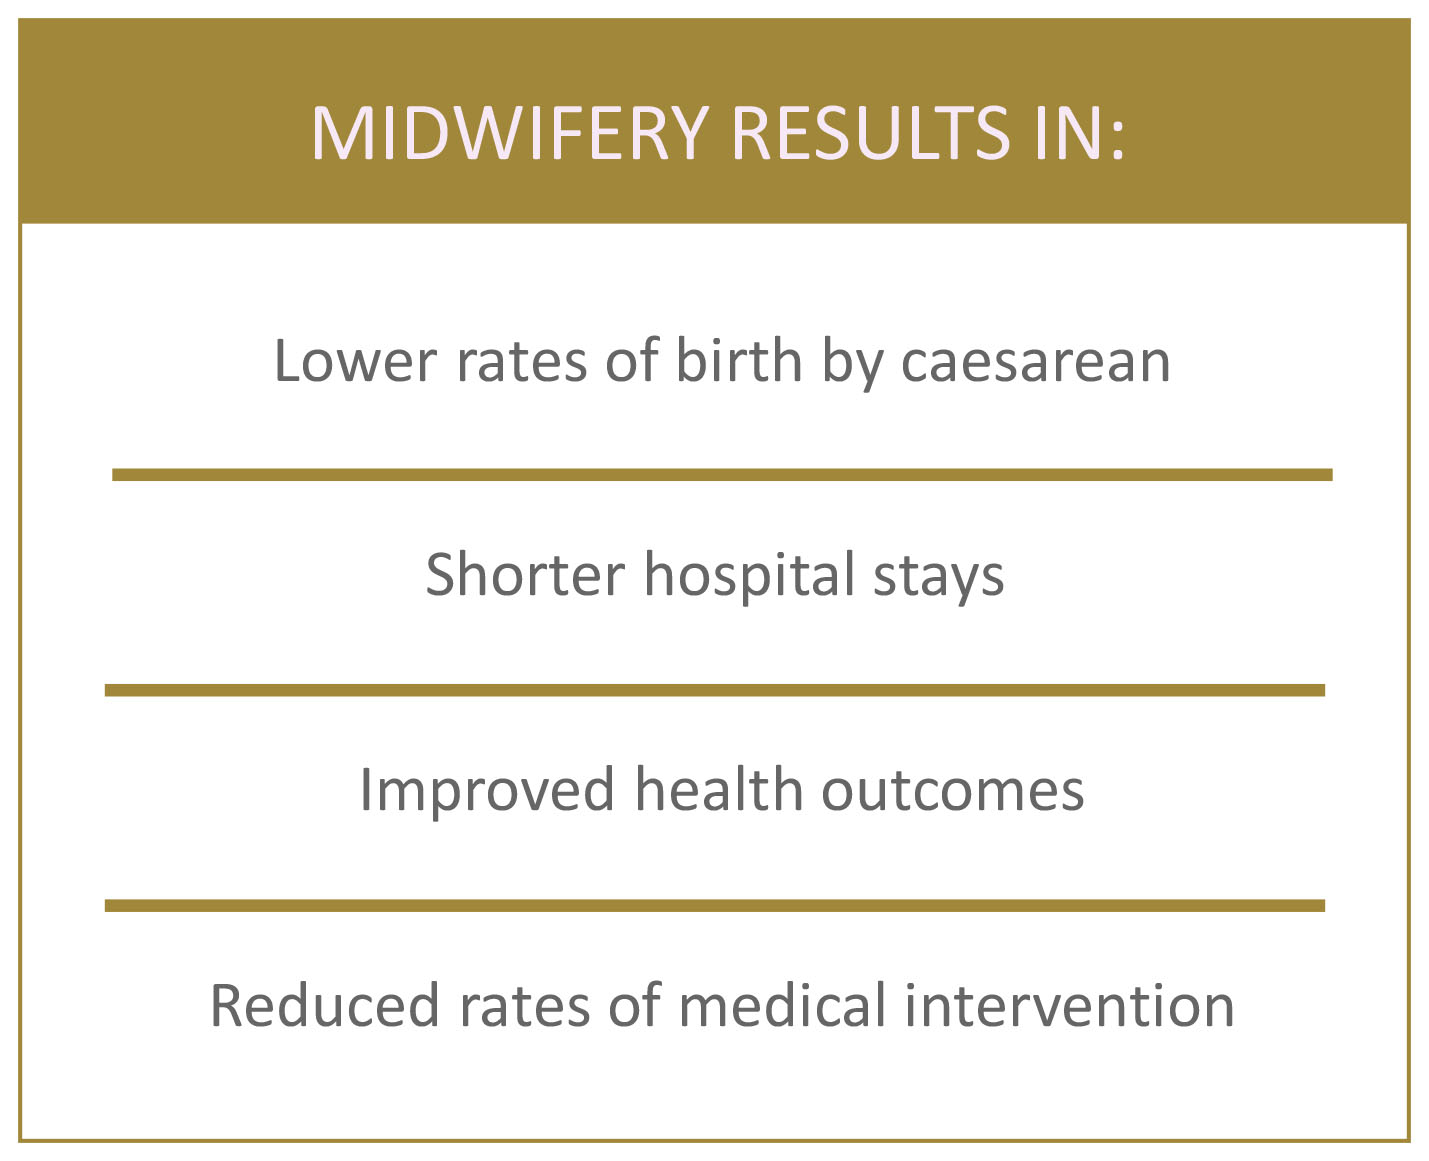 Midwives_results_-_2.jpg